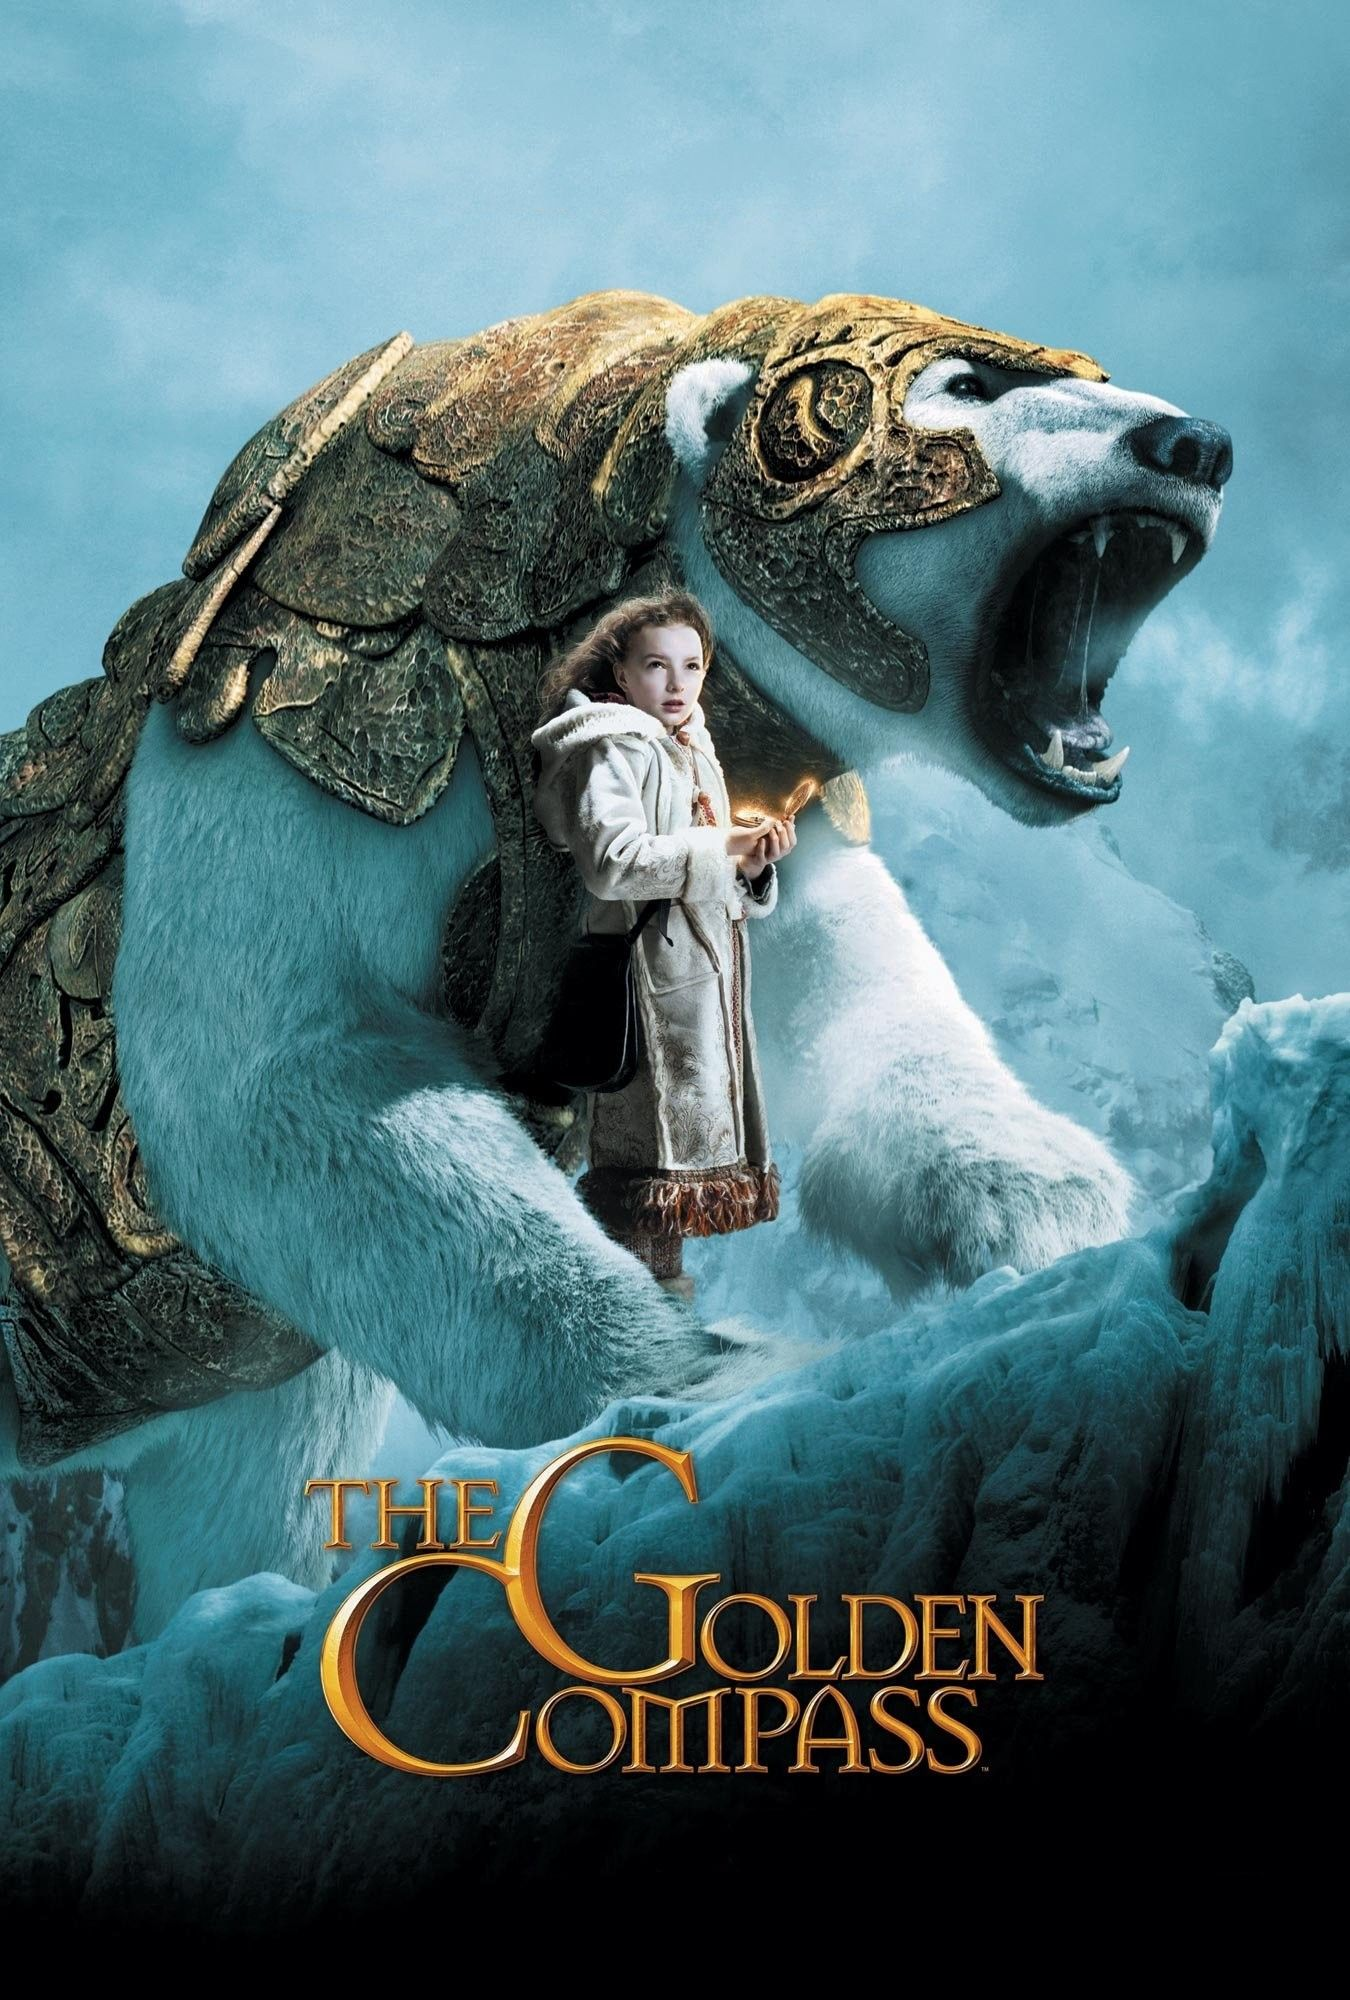 The Golden Compass Lyra Silver Tongue And Iorek Byrneson With